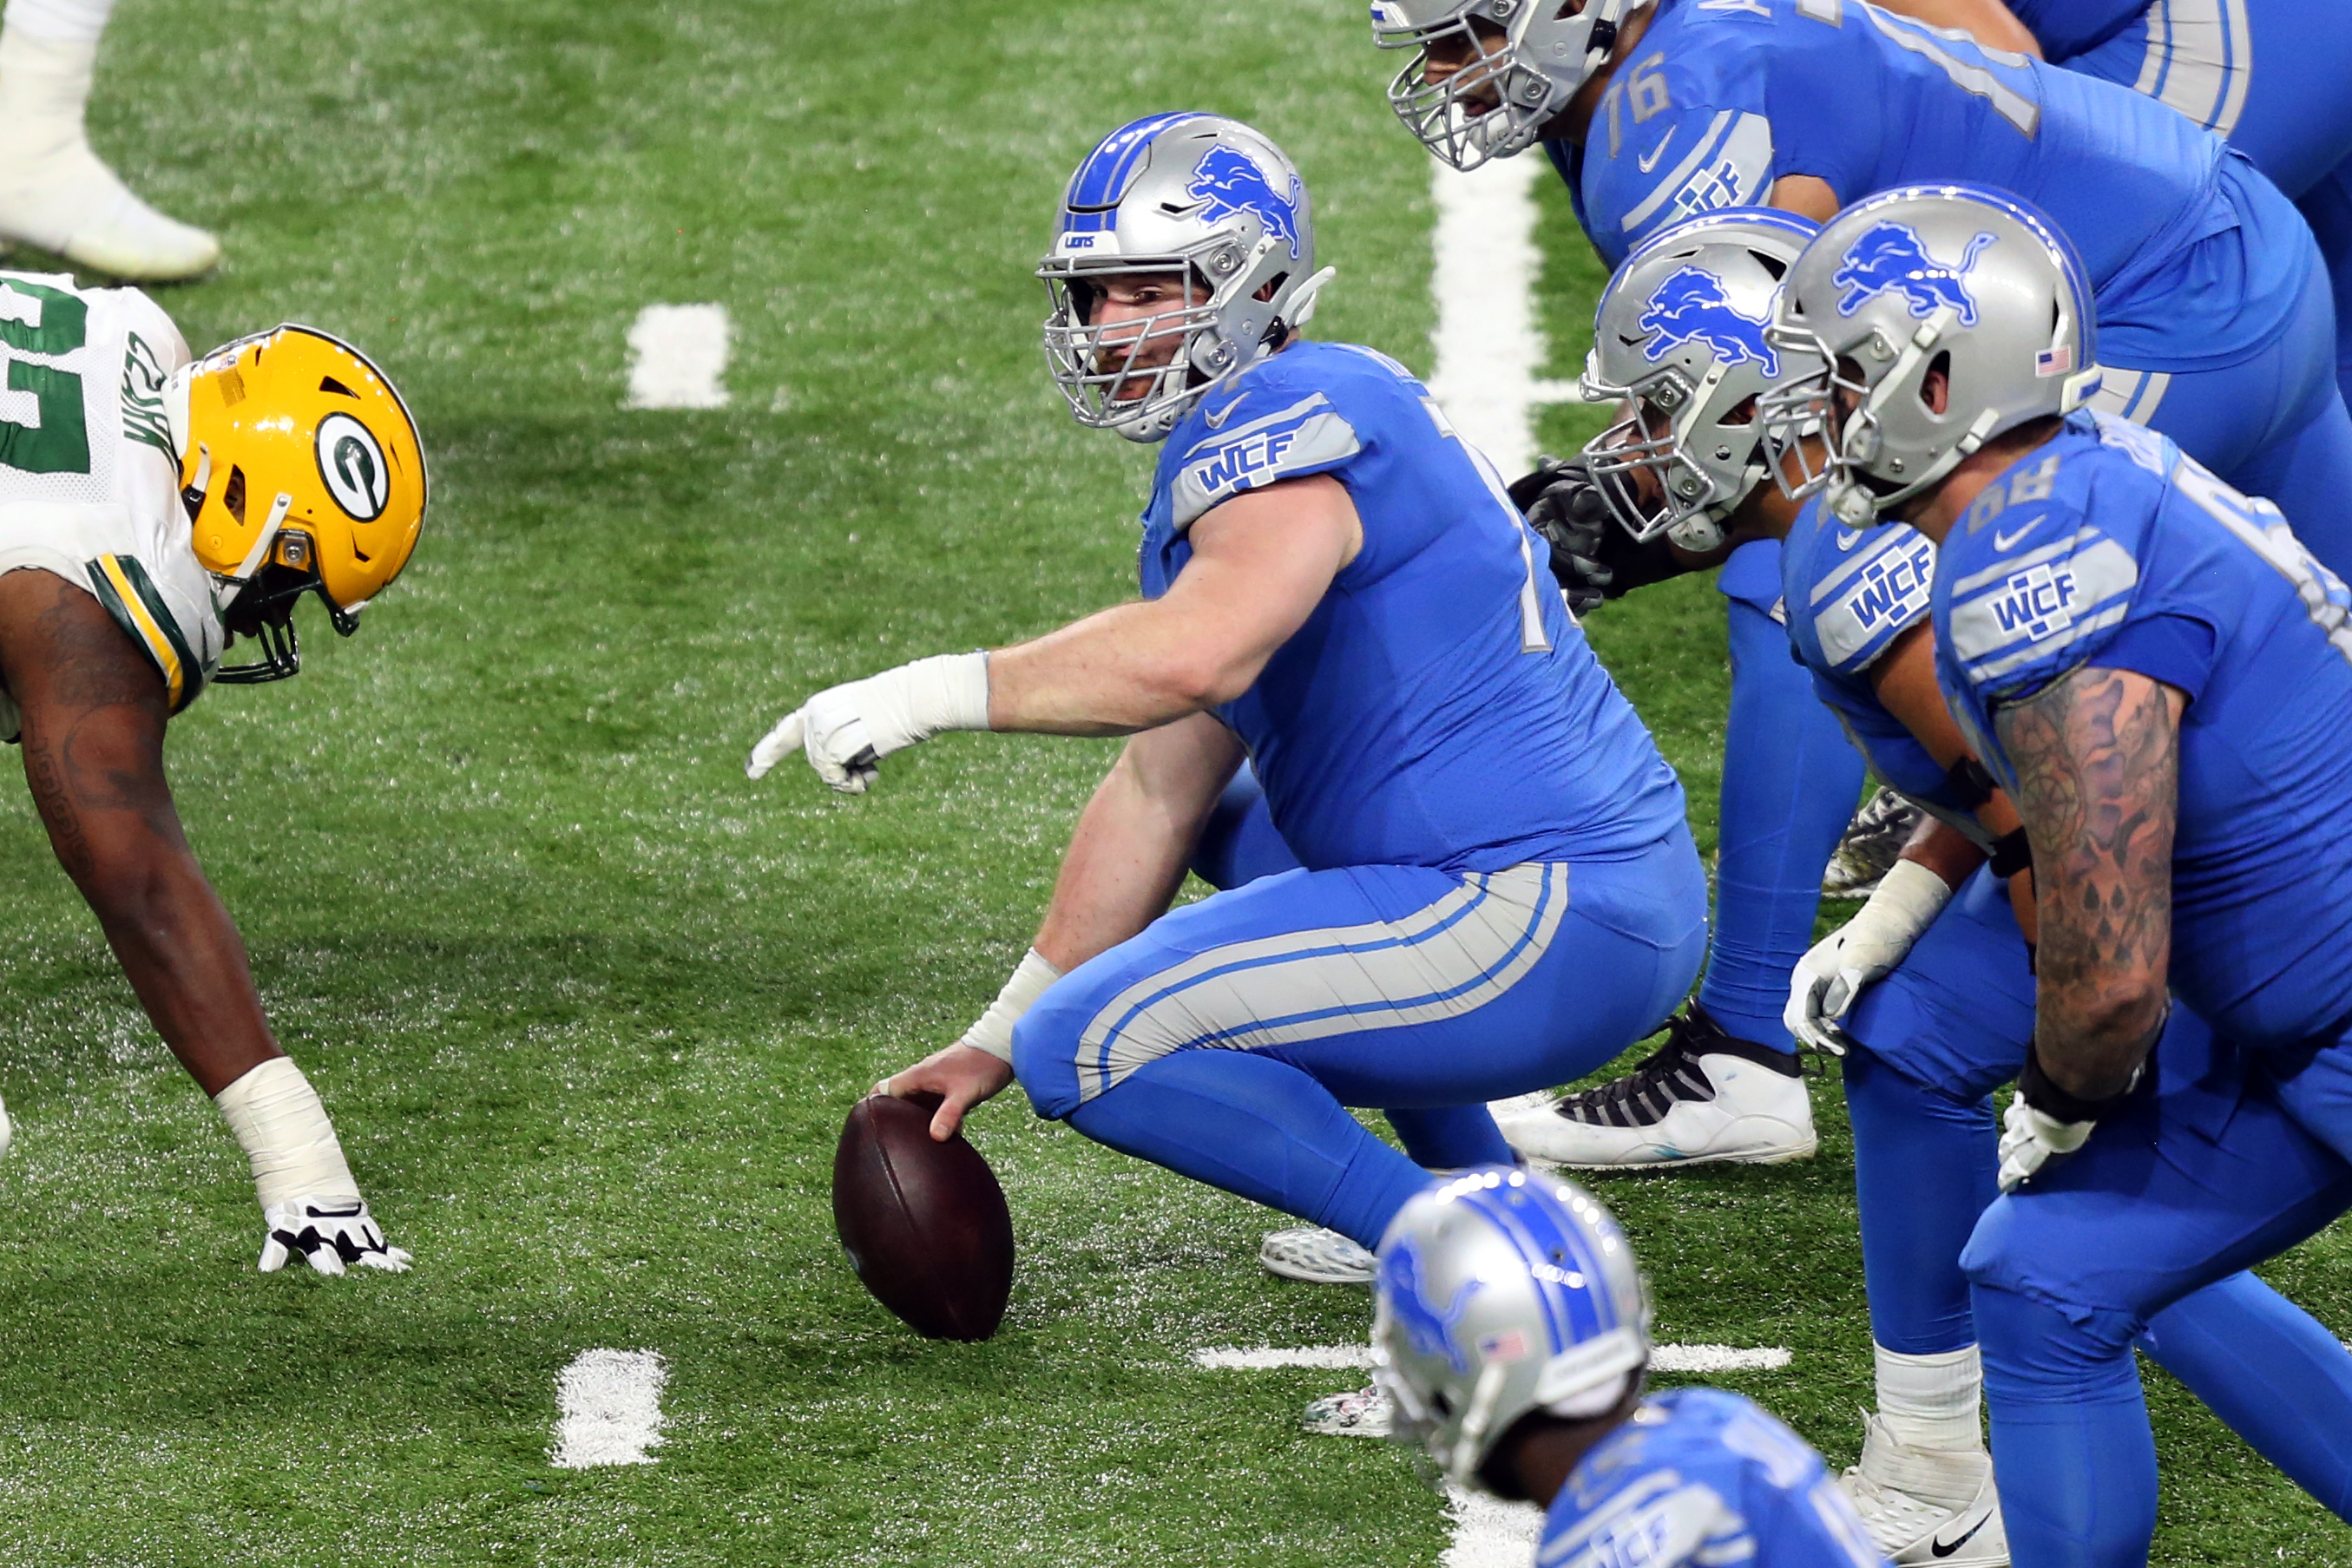 Detroit Lions center Frank Ragnow signals at the line of scrimmage